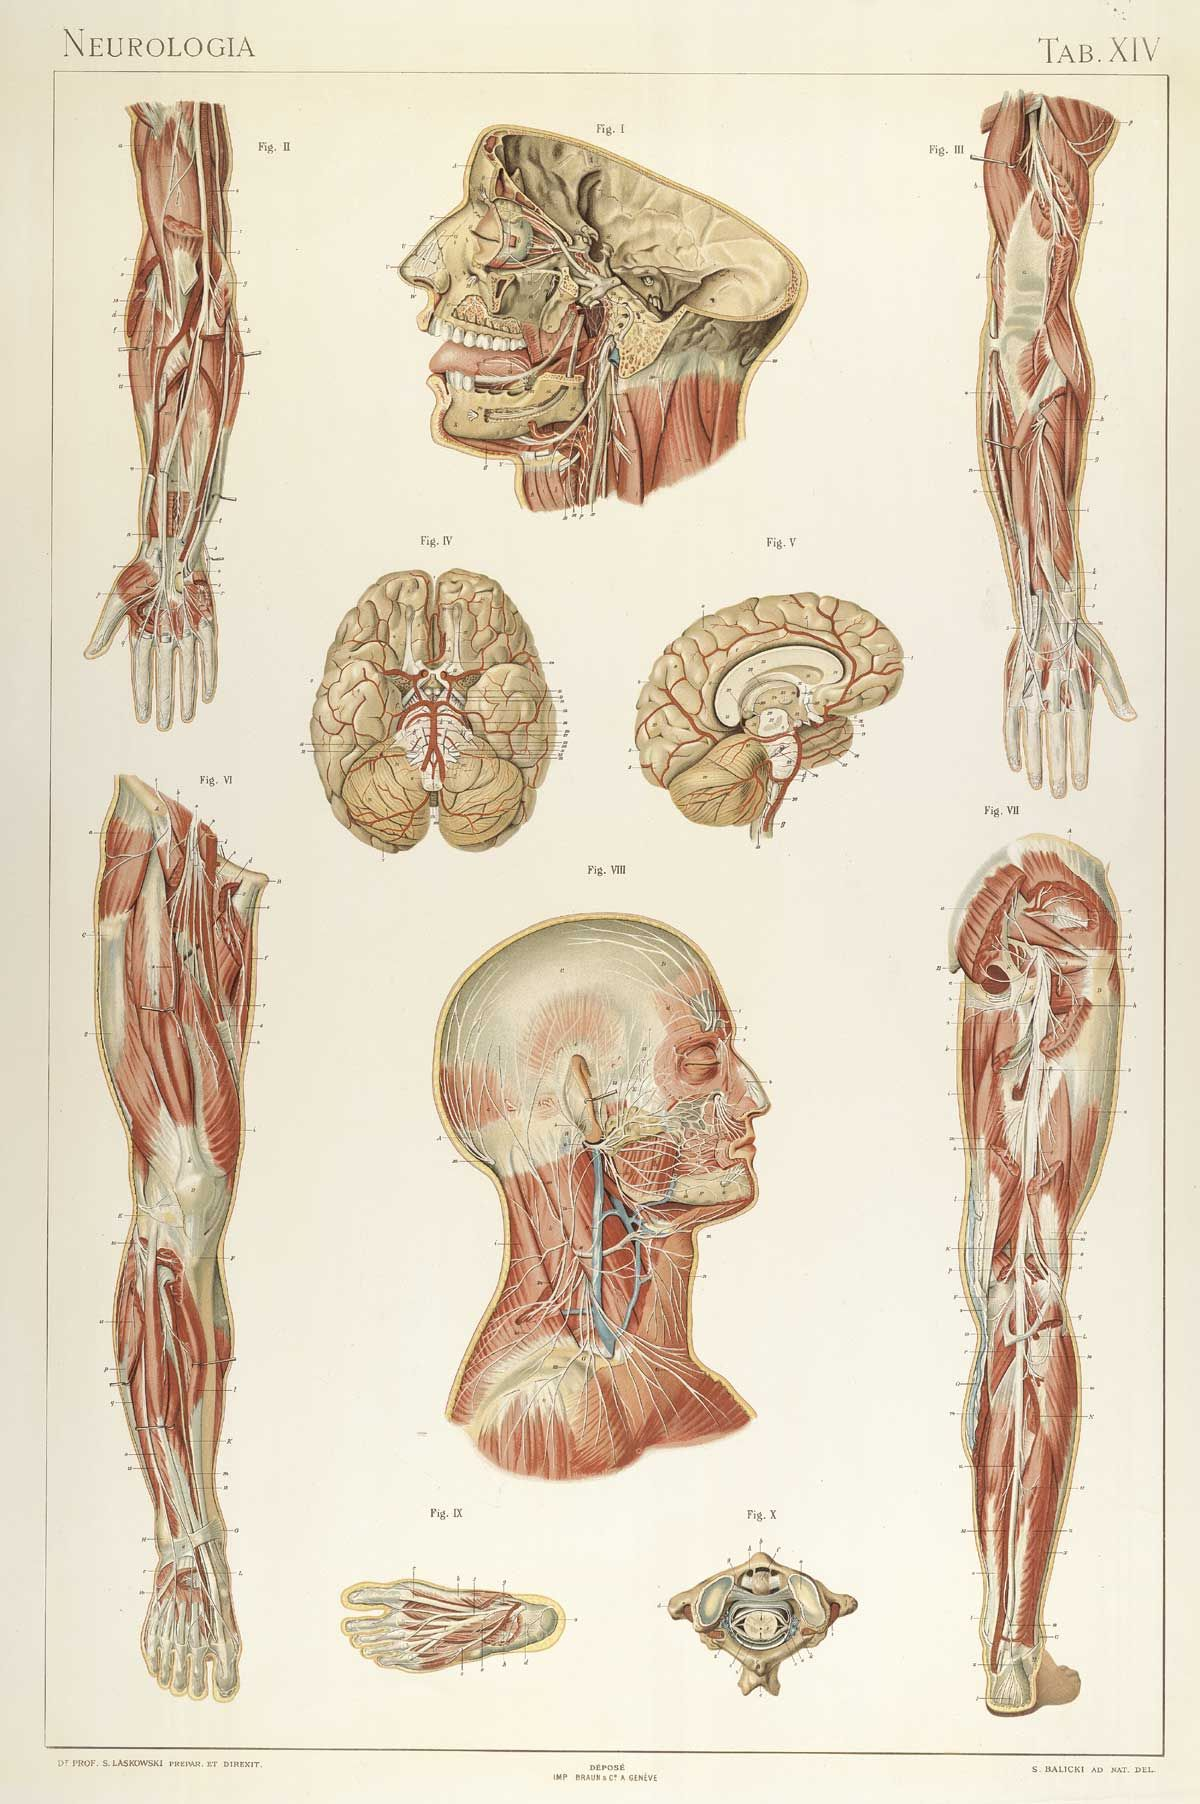 http://www.nlm.nih.gov/exhibition/historicalanatomies/Images ...